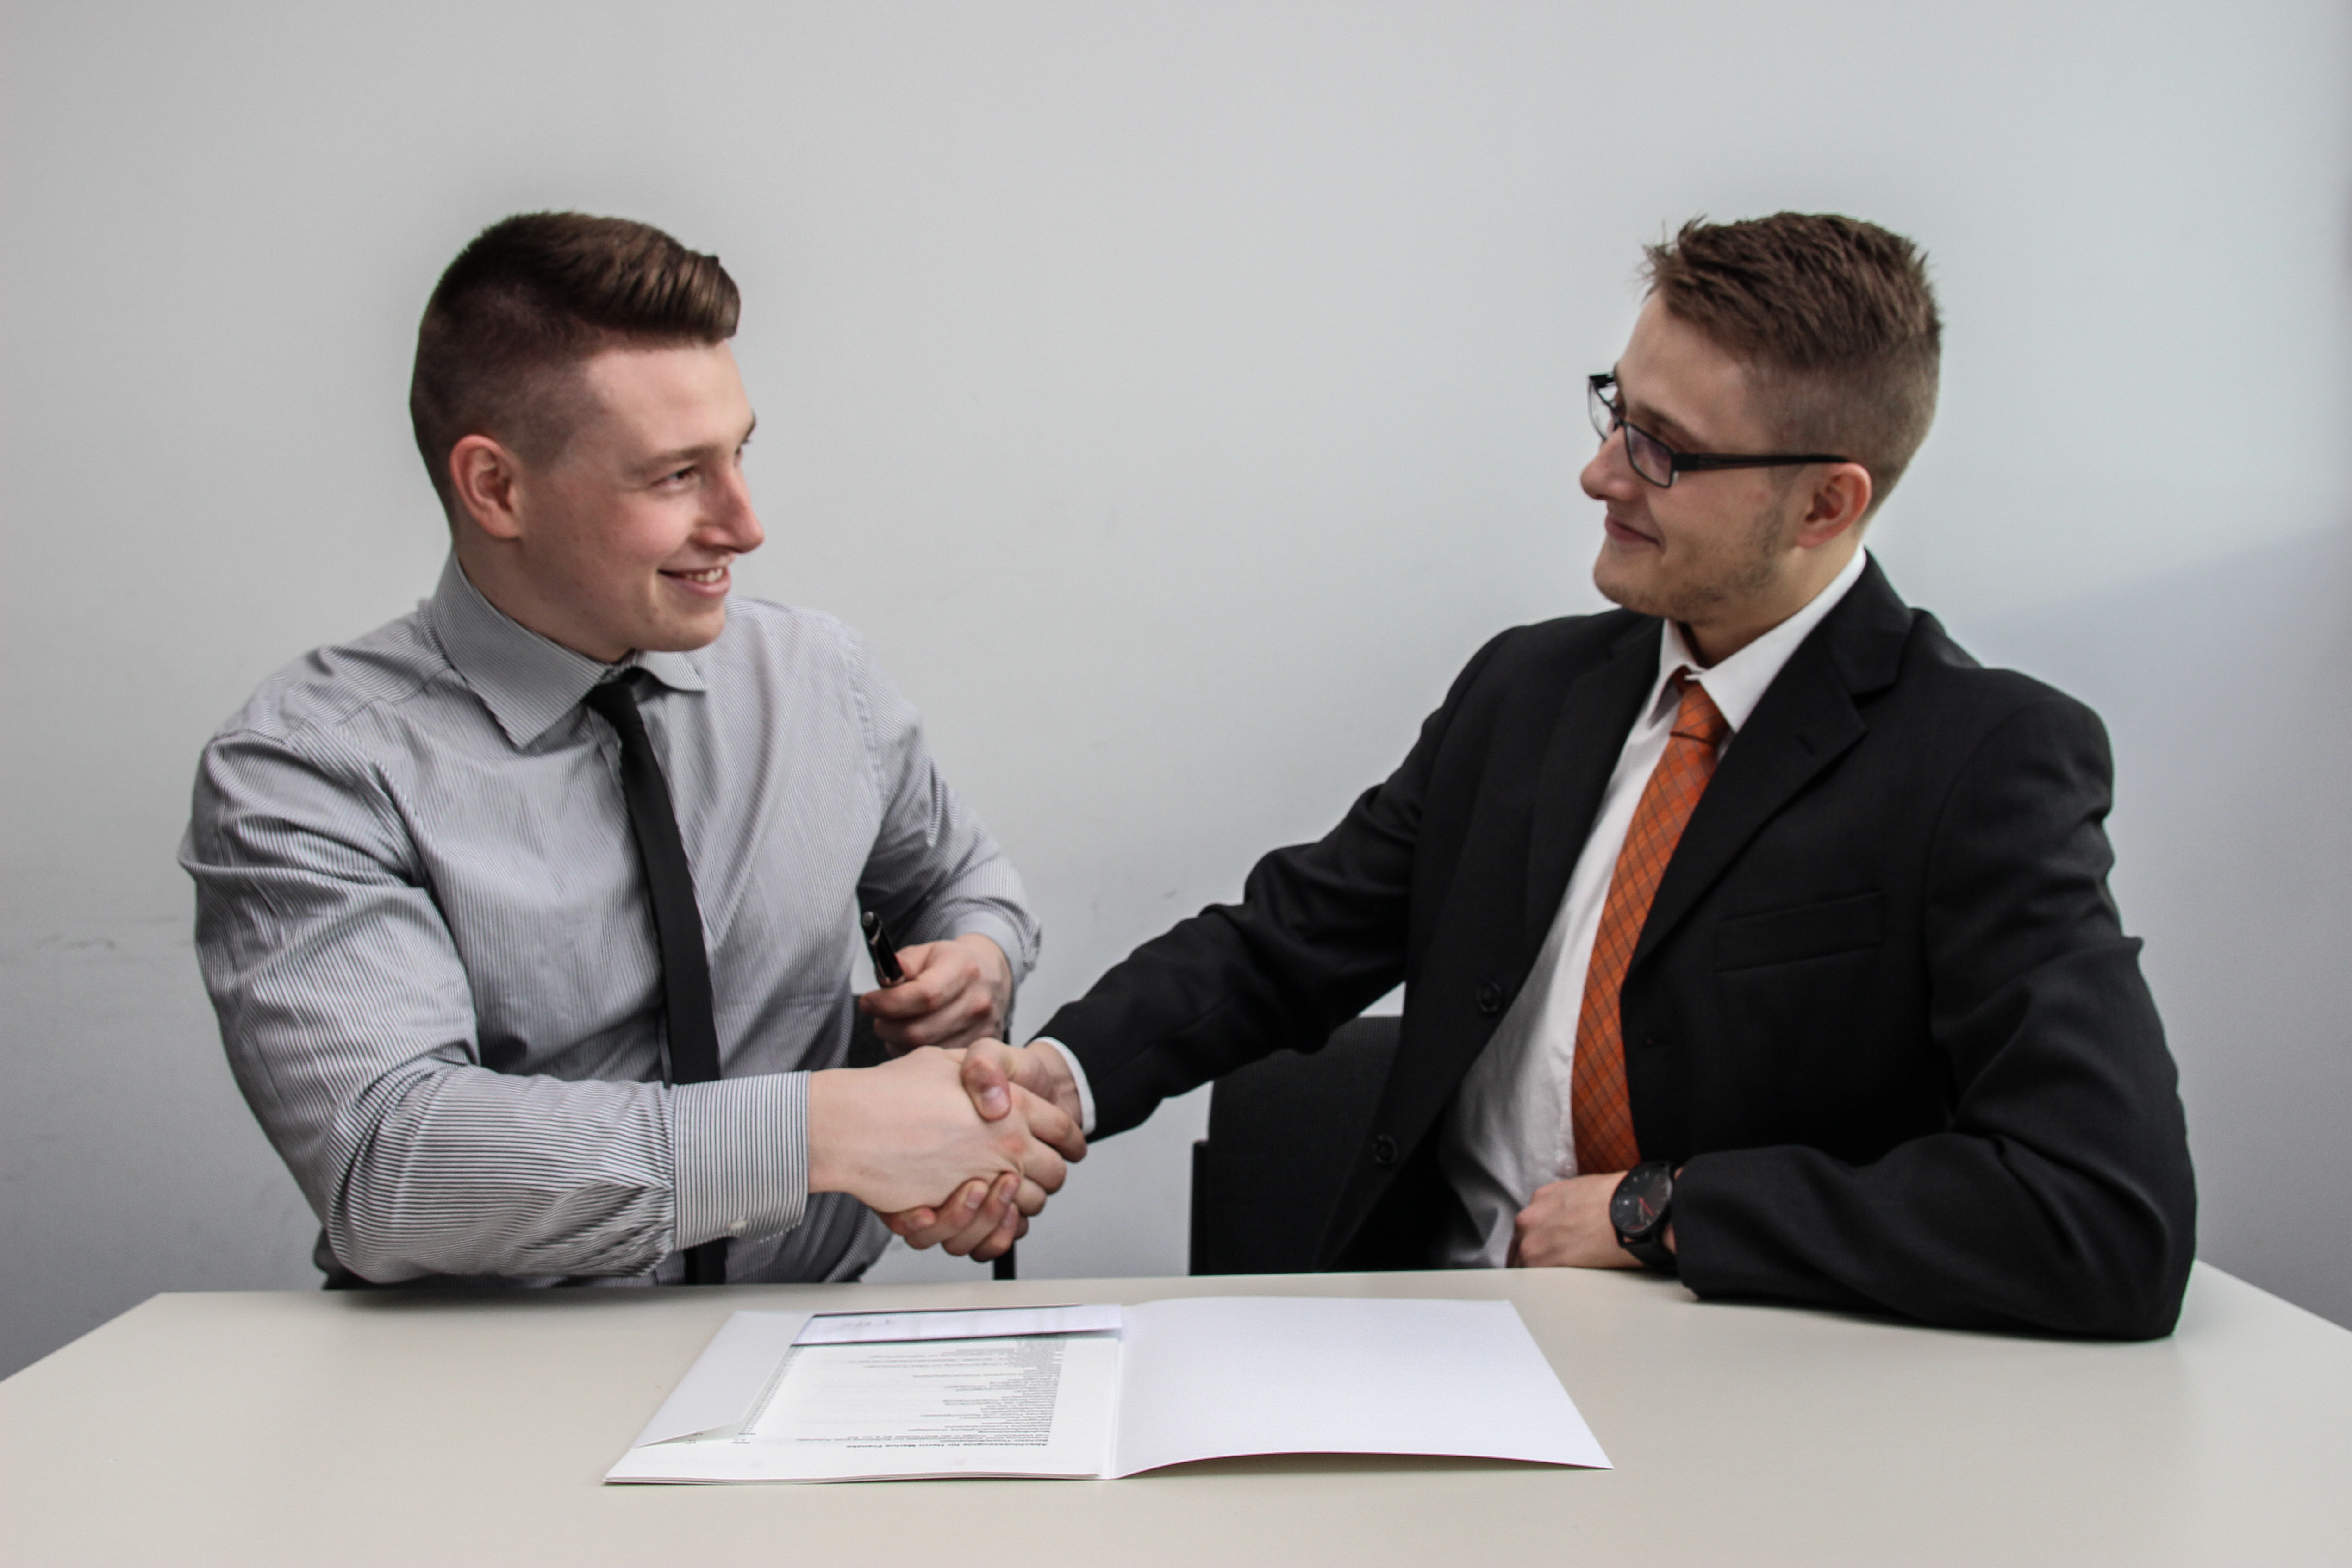 Preparing Non-Compete & Non-Solicitation Agreements for Your Employees